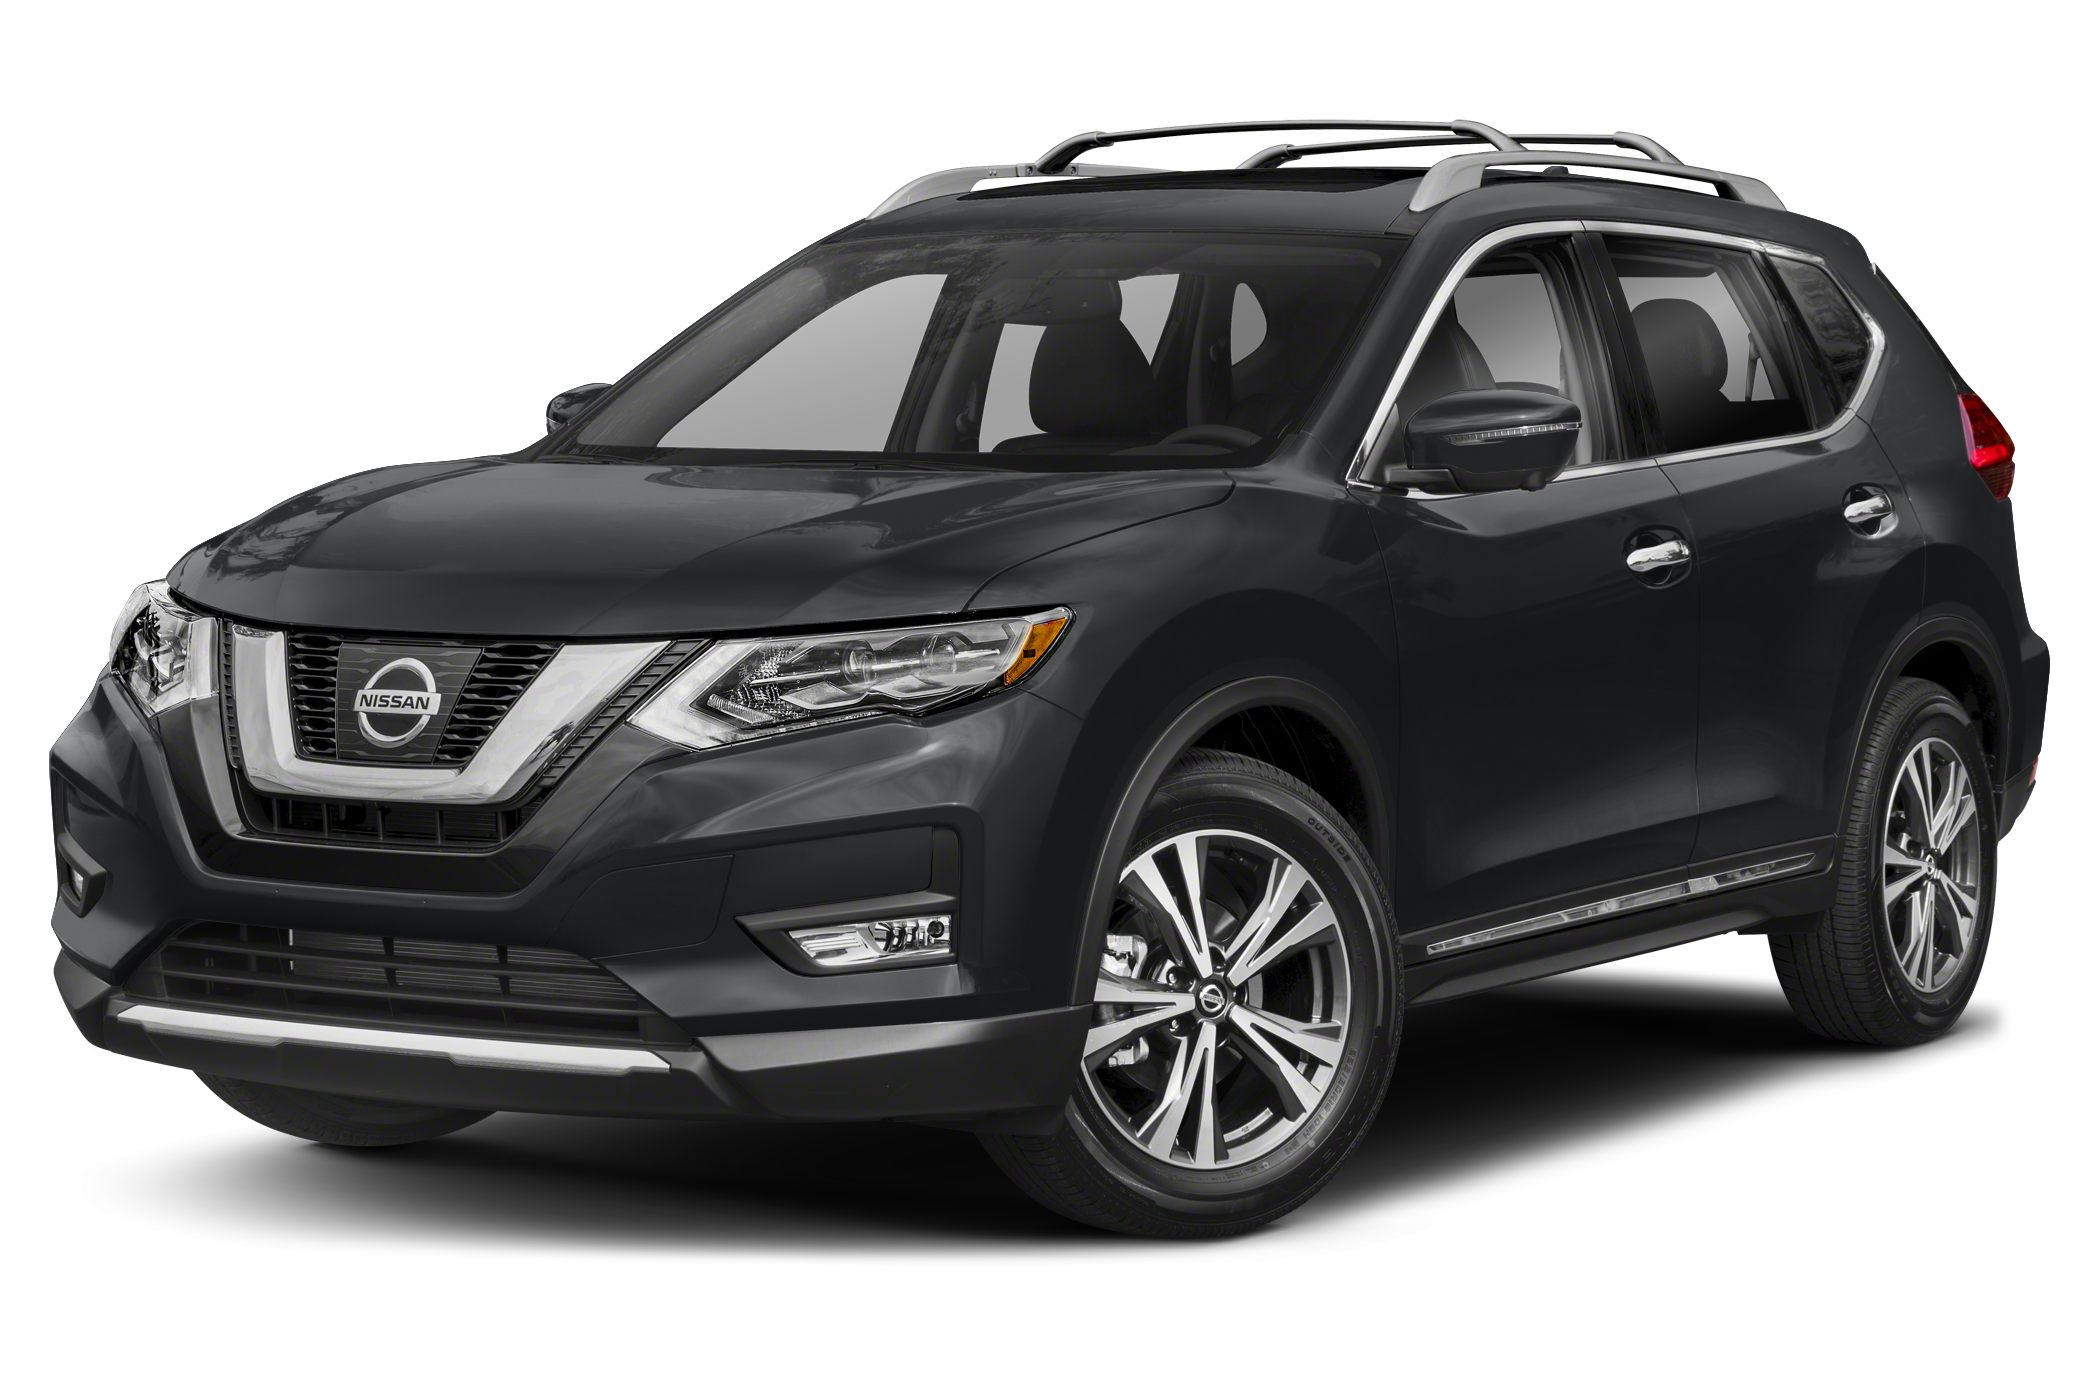 2017 Nissan Rogue SL Price includes 1000 - Nissan Customer Cash - National Exp 01312017 5